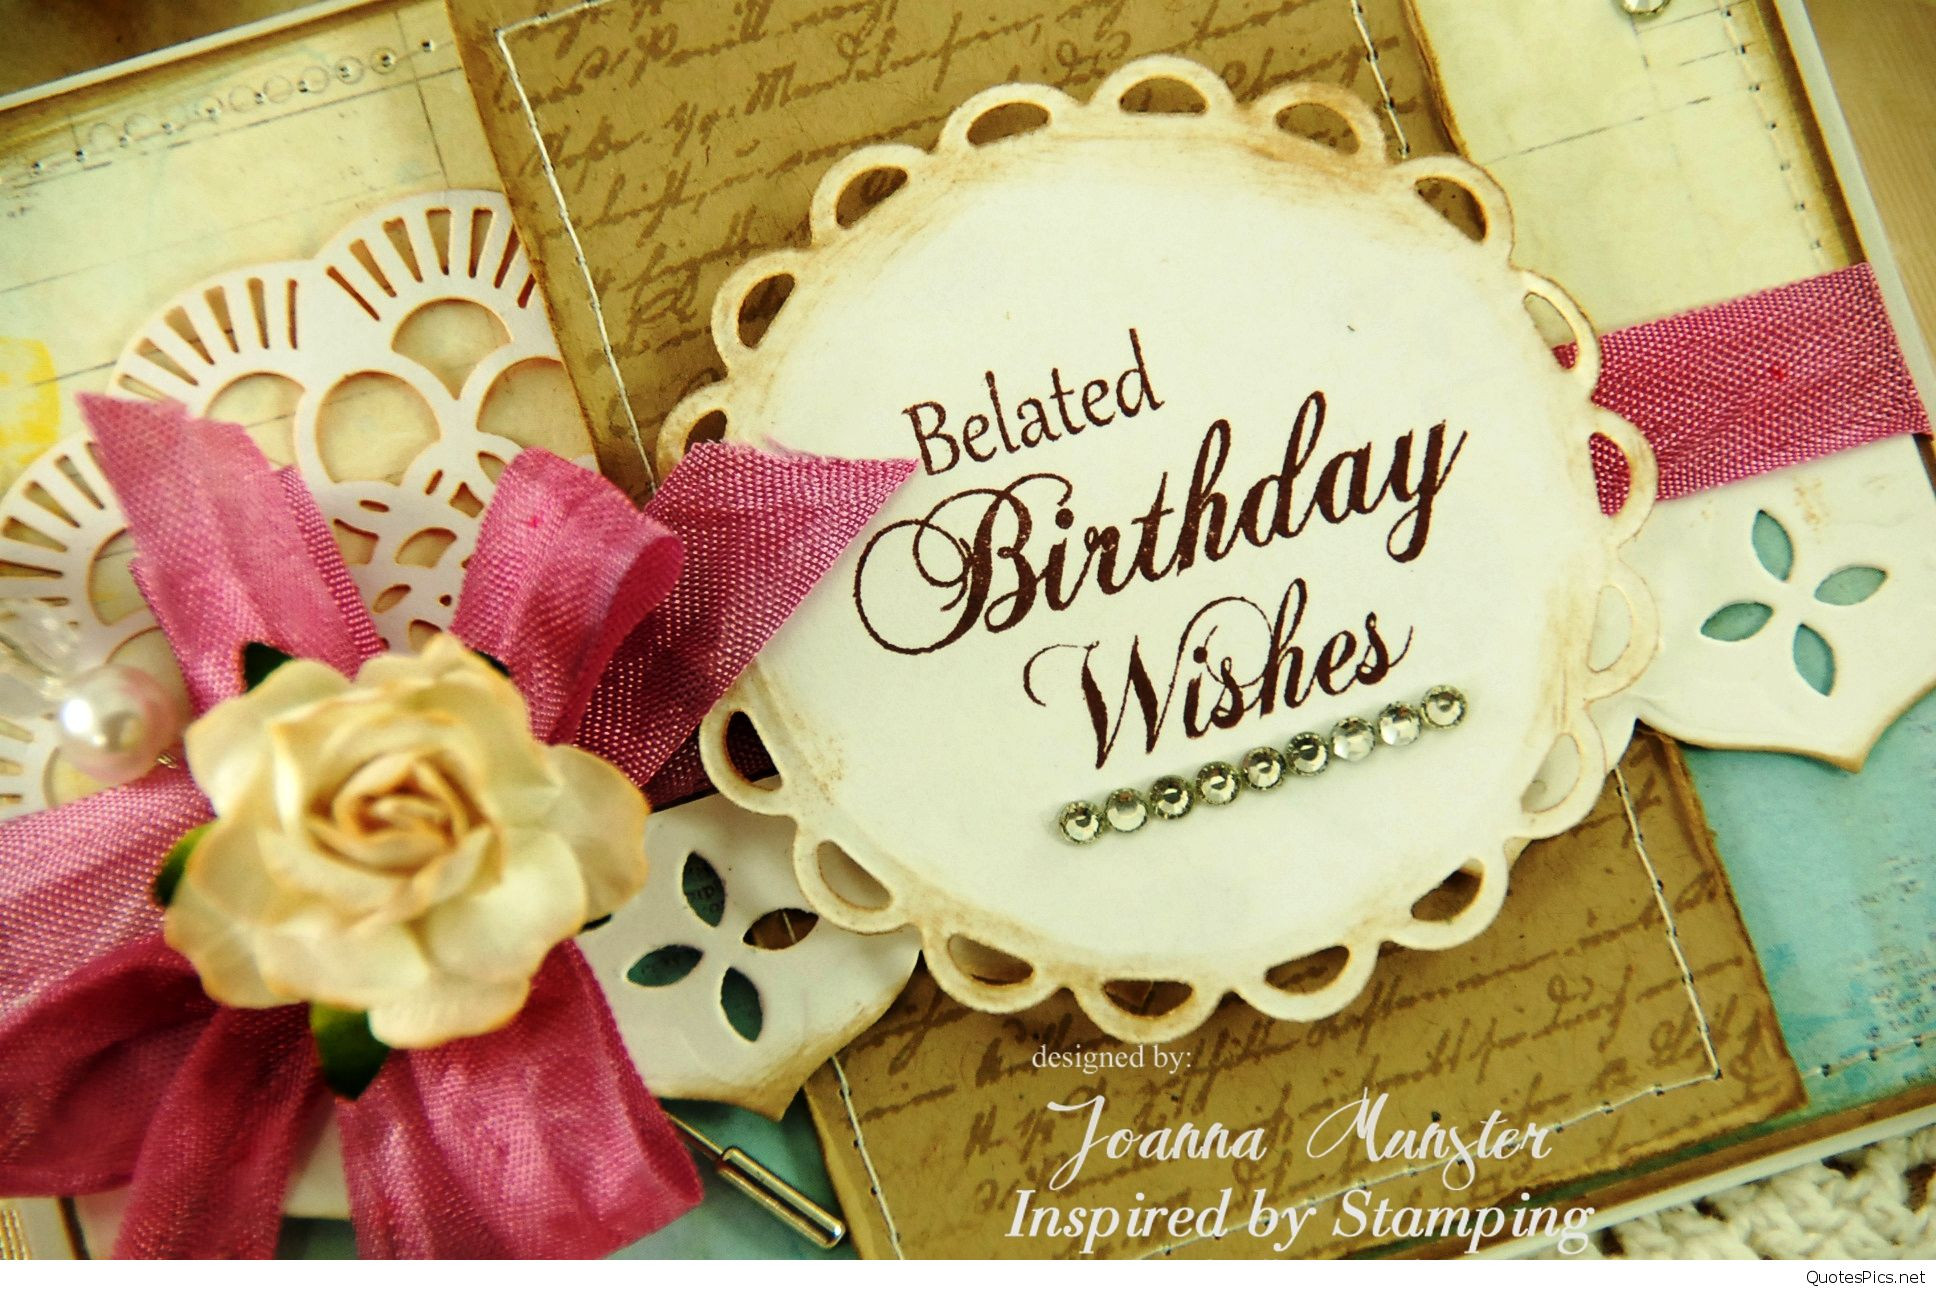 Best ideas about Belated Birthday Wishes Images . Save or Pin belated birthday wishes Quotes Pics Now.